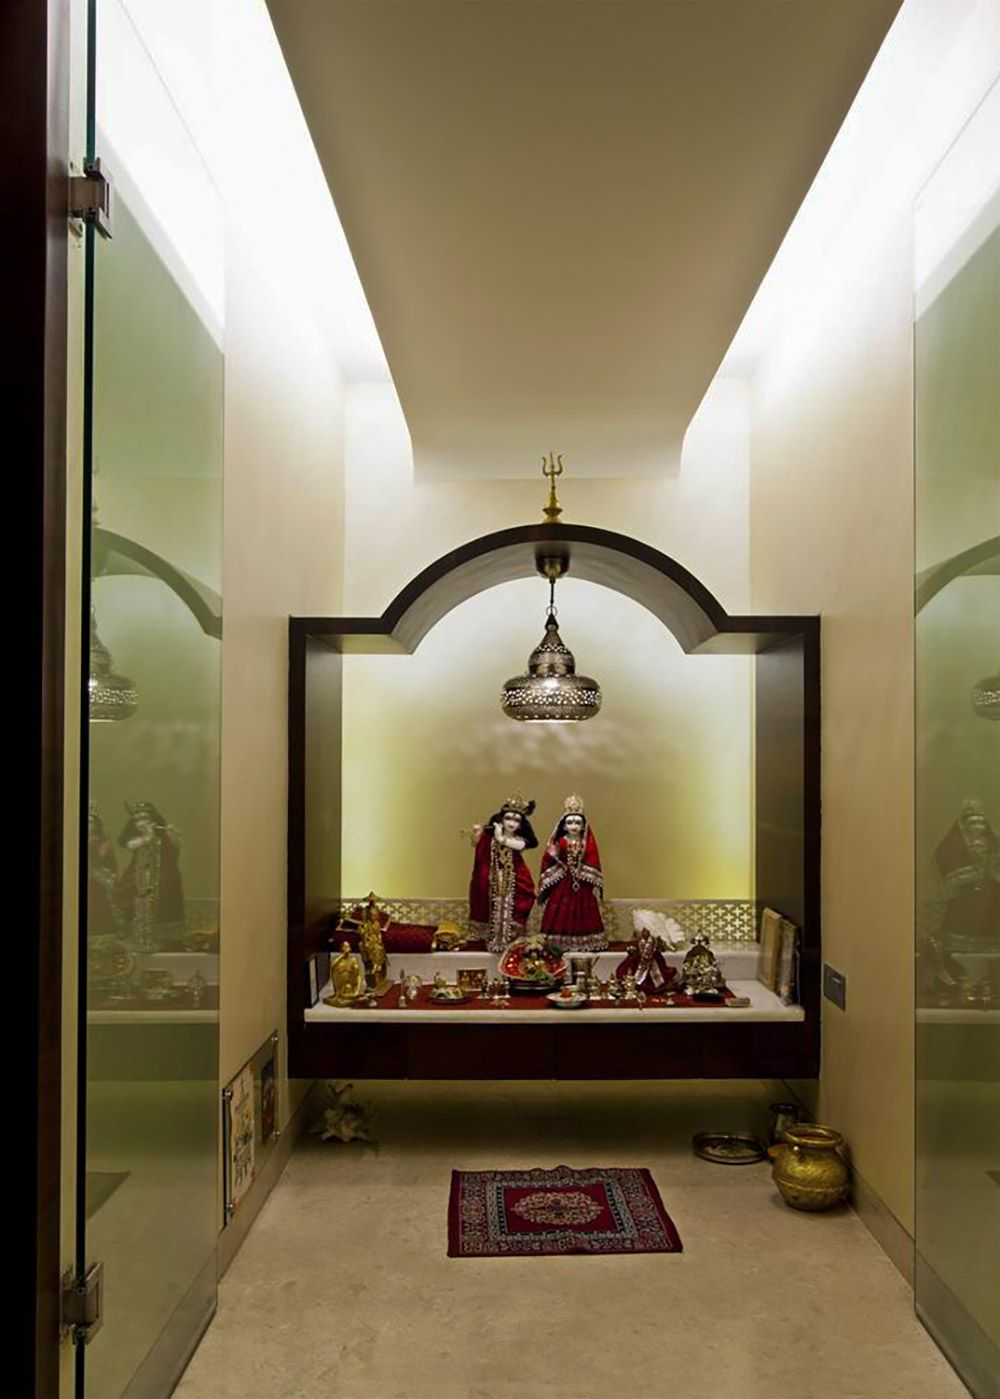 Pin By Manjula Juluri On Pooja Room Ideas Pinterest Photos